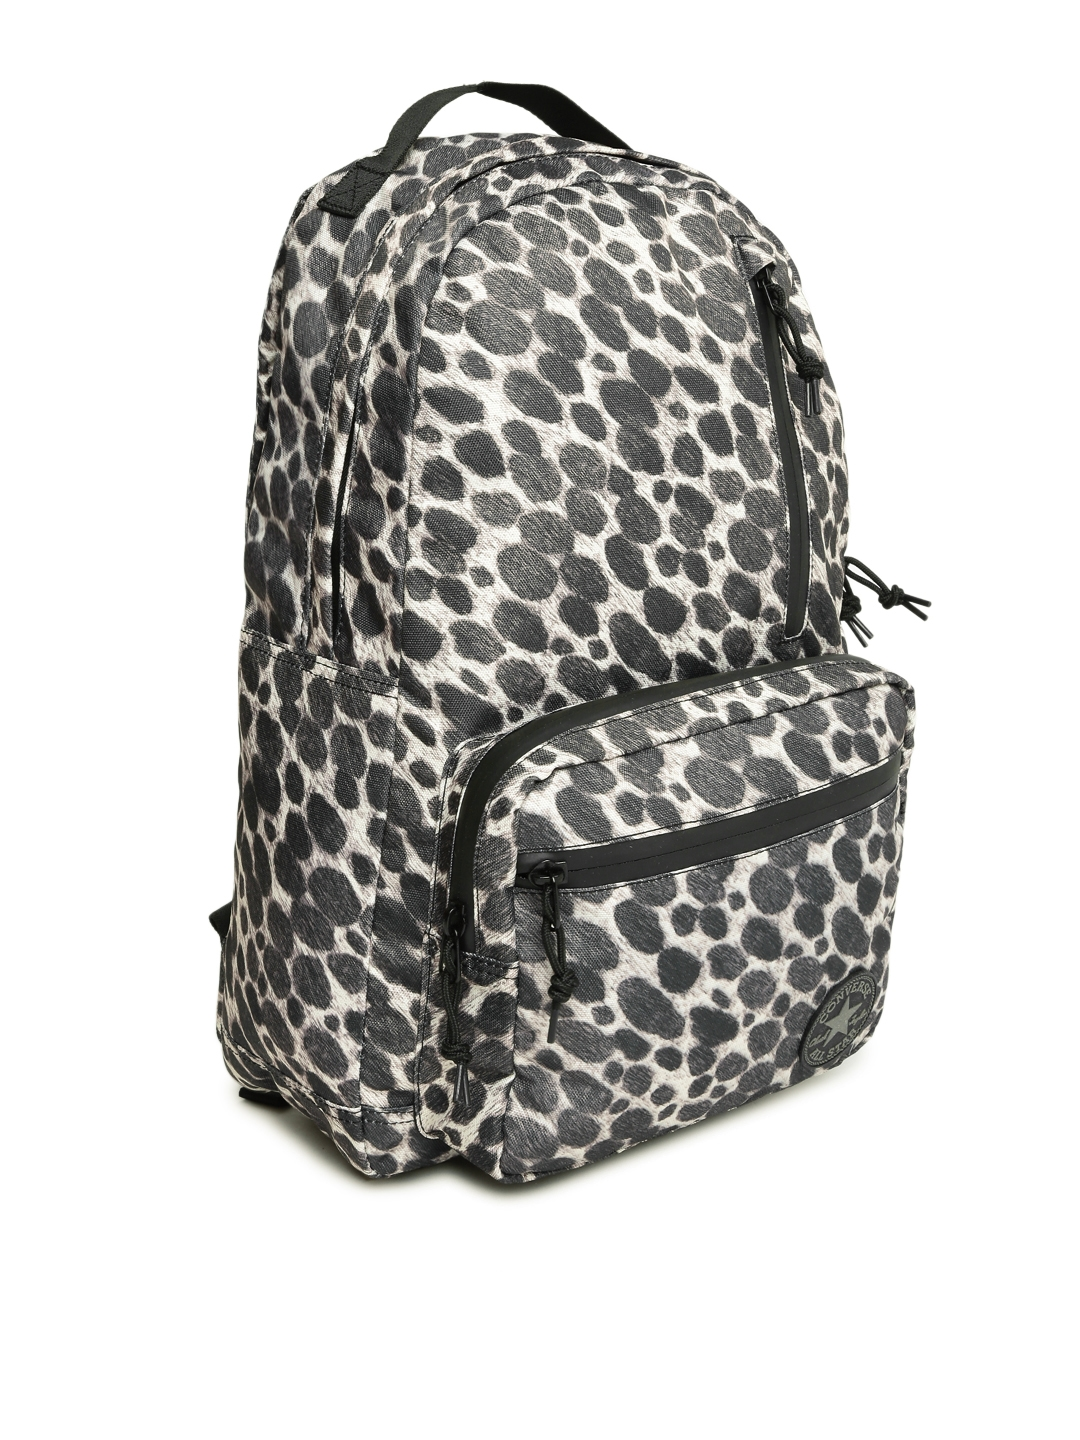 329cb8f70a94 Buy Converse Unisex Brown   Off White Graphic Print Backpack ...